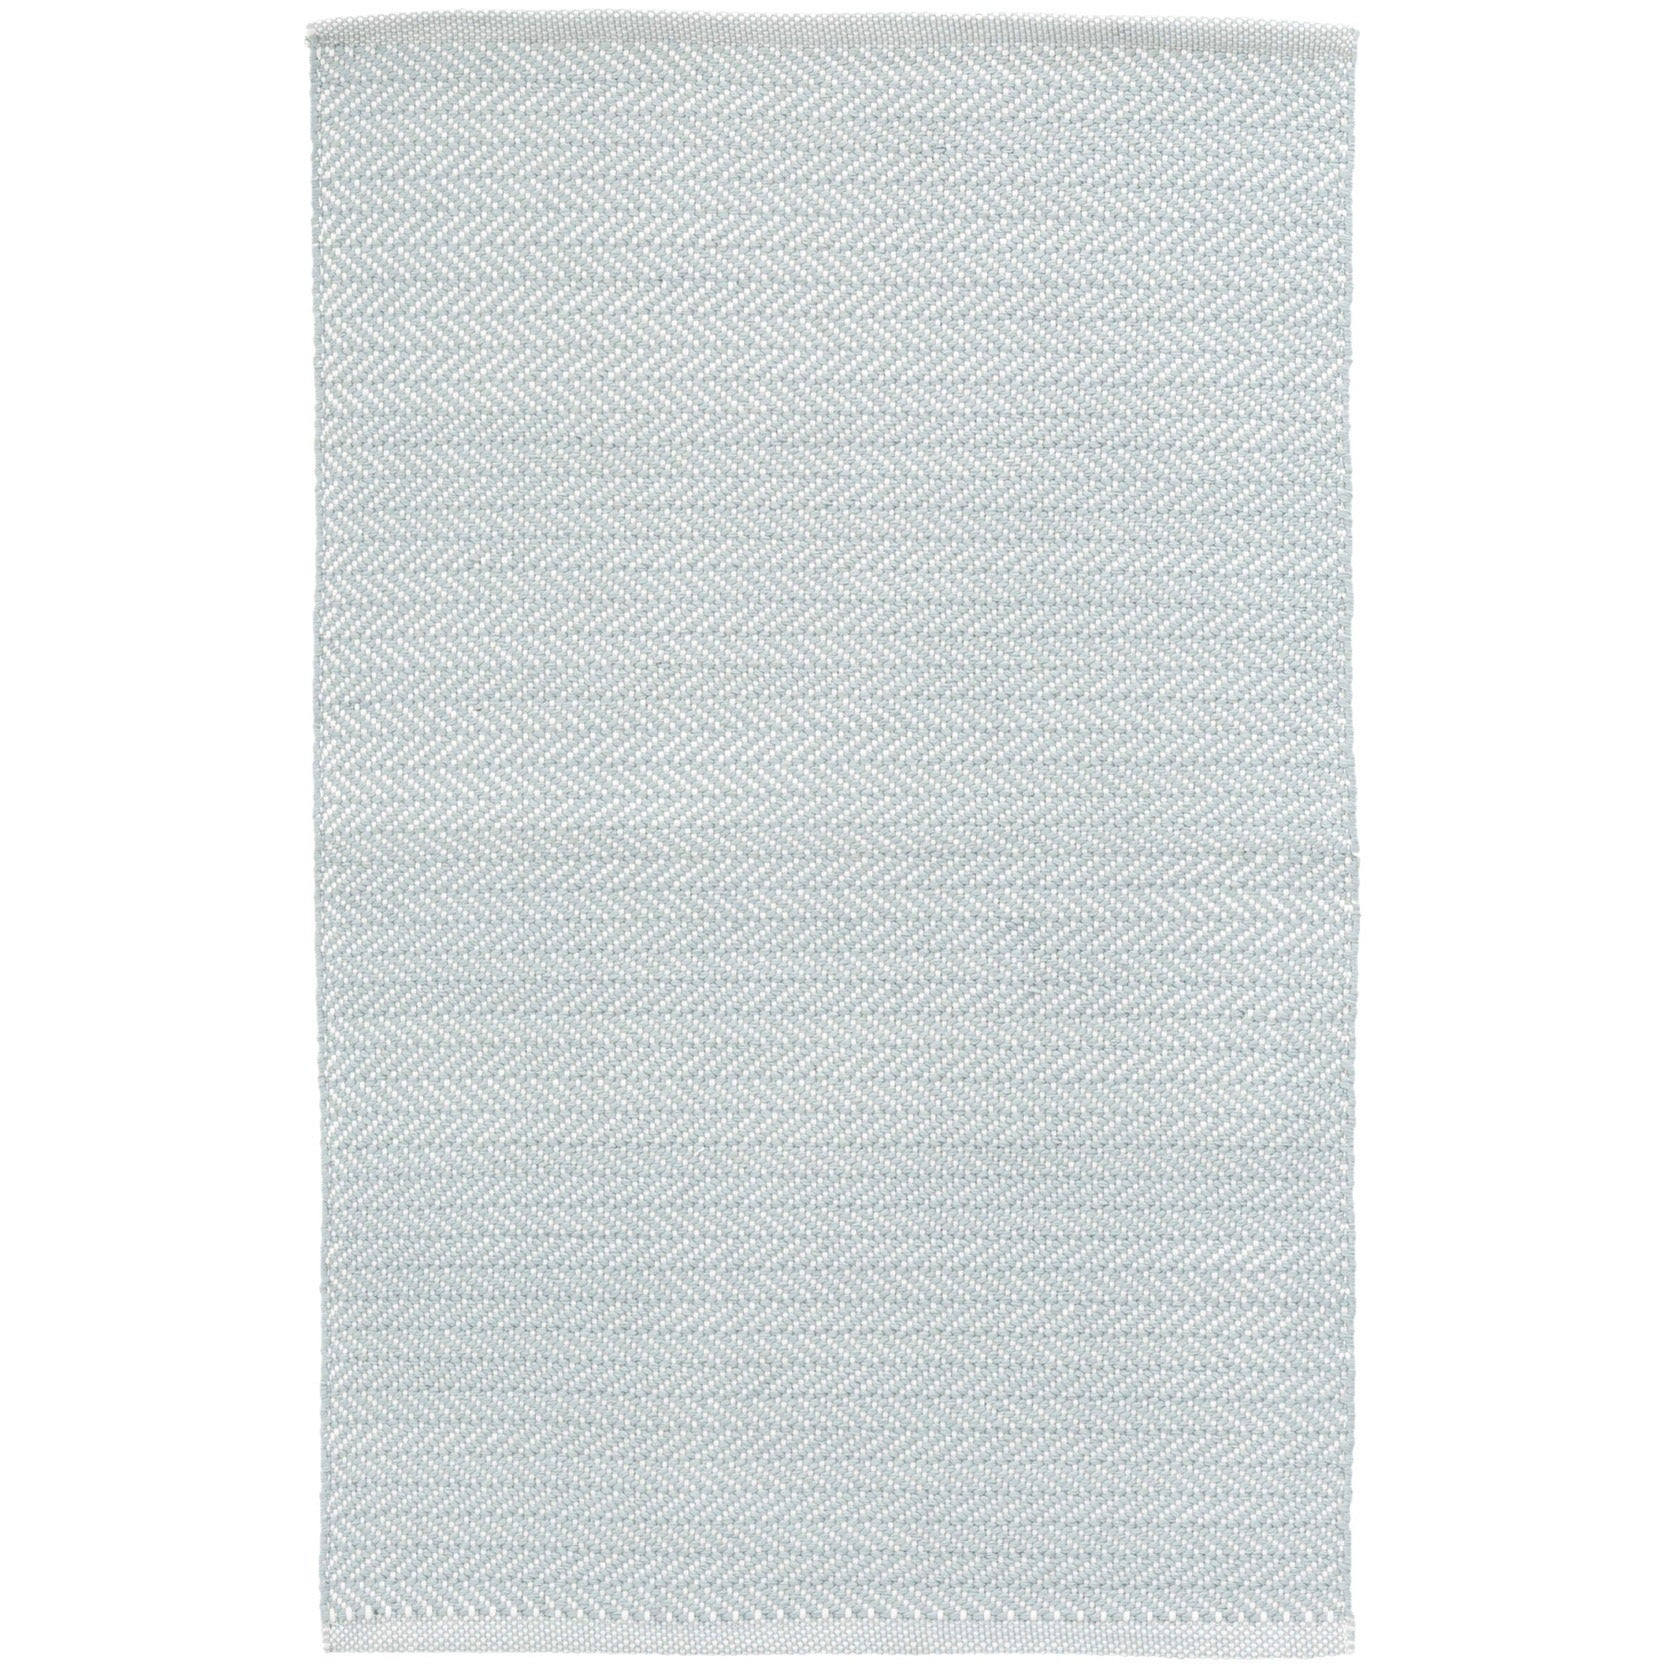 Herringbone Indoor Outdoor Rug - Light Blue / Ivory